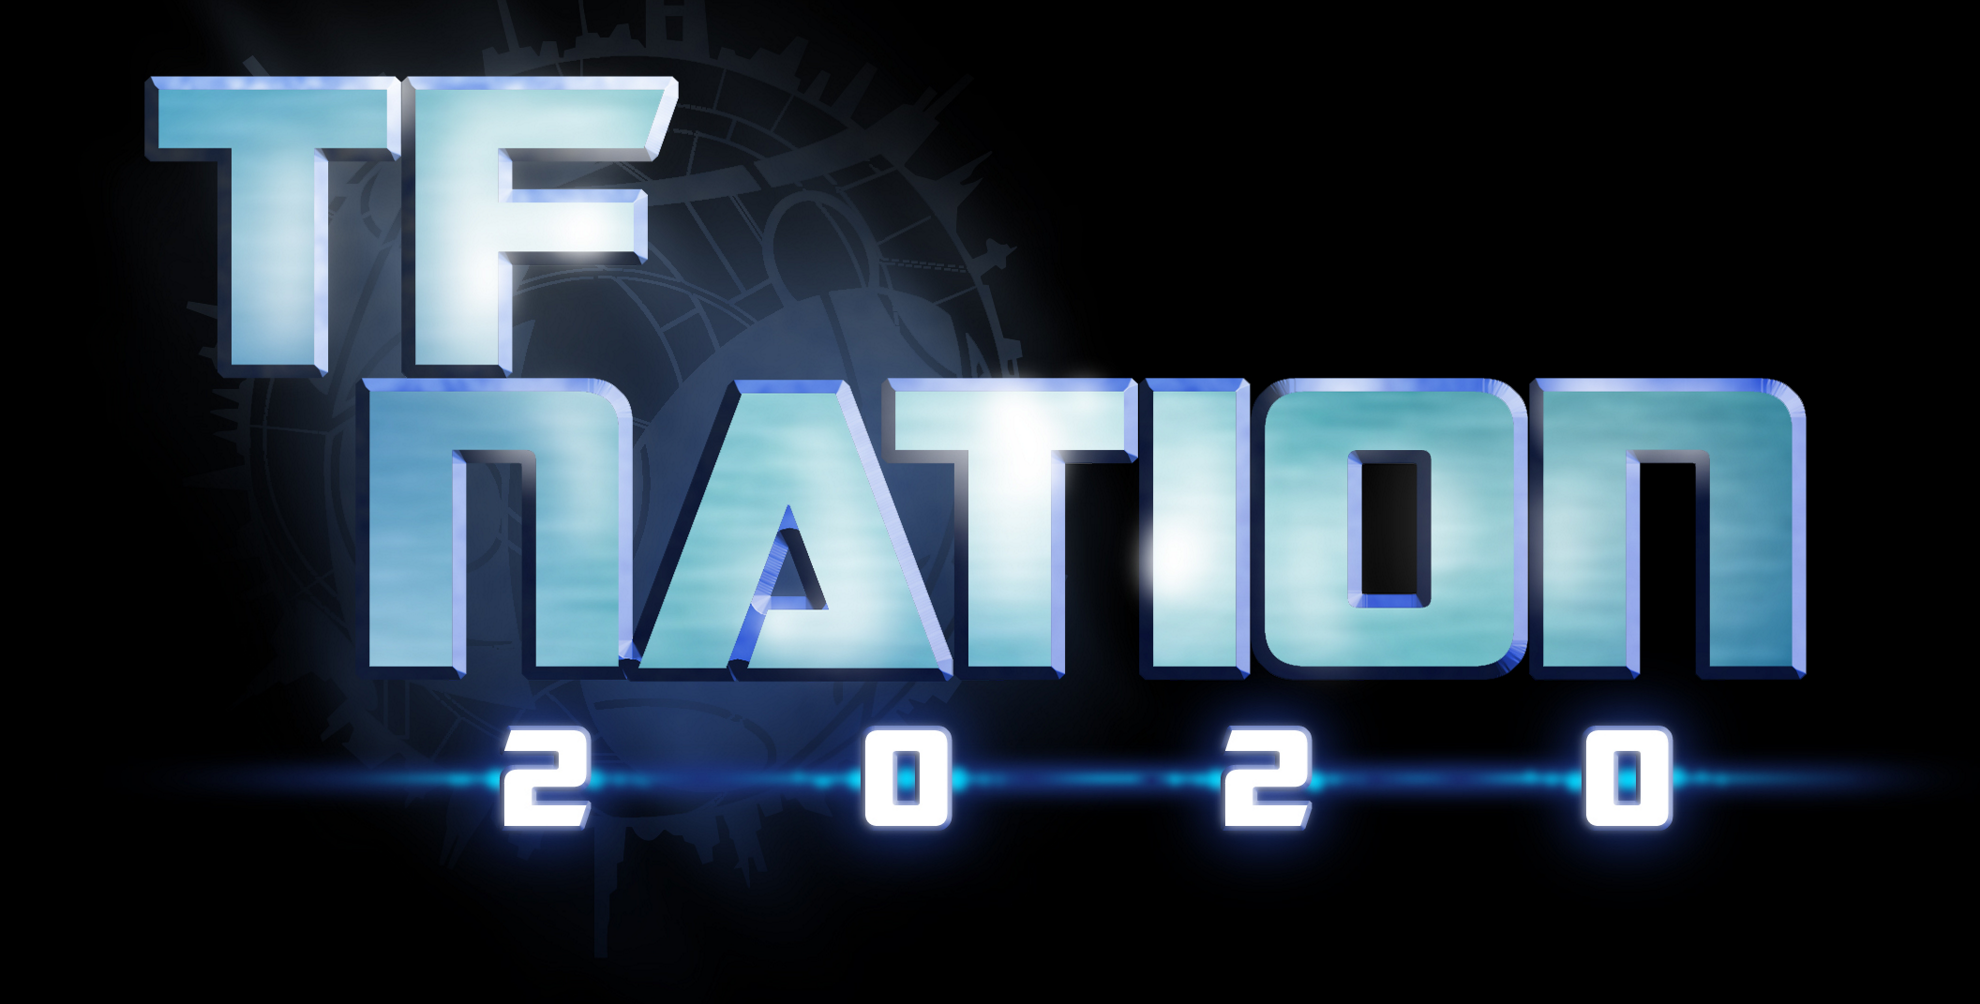 Click to enter the TFNation 2020 website